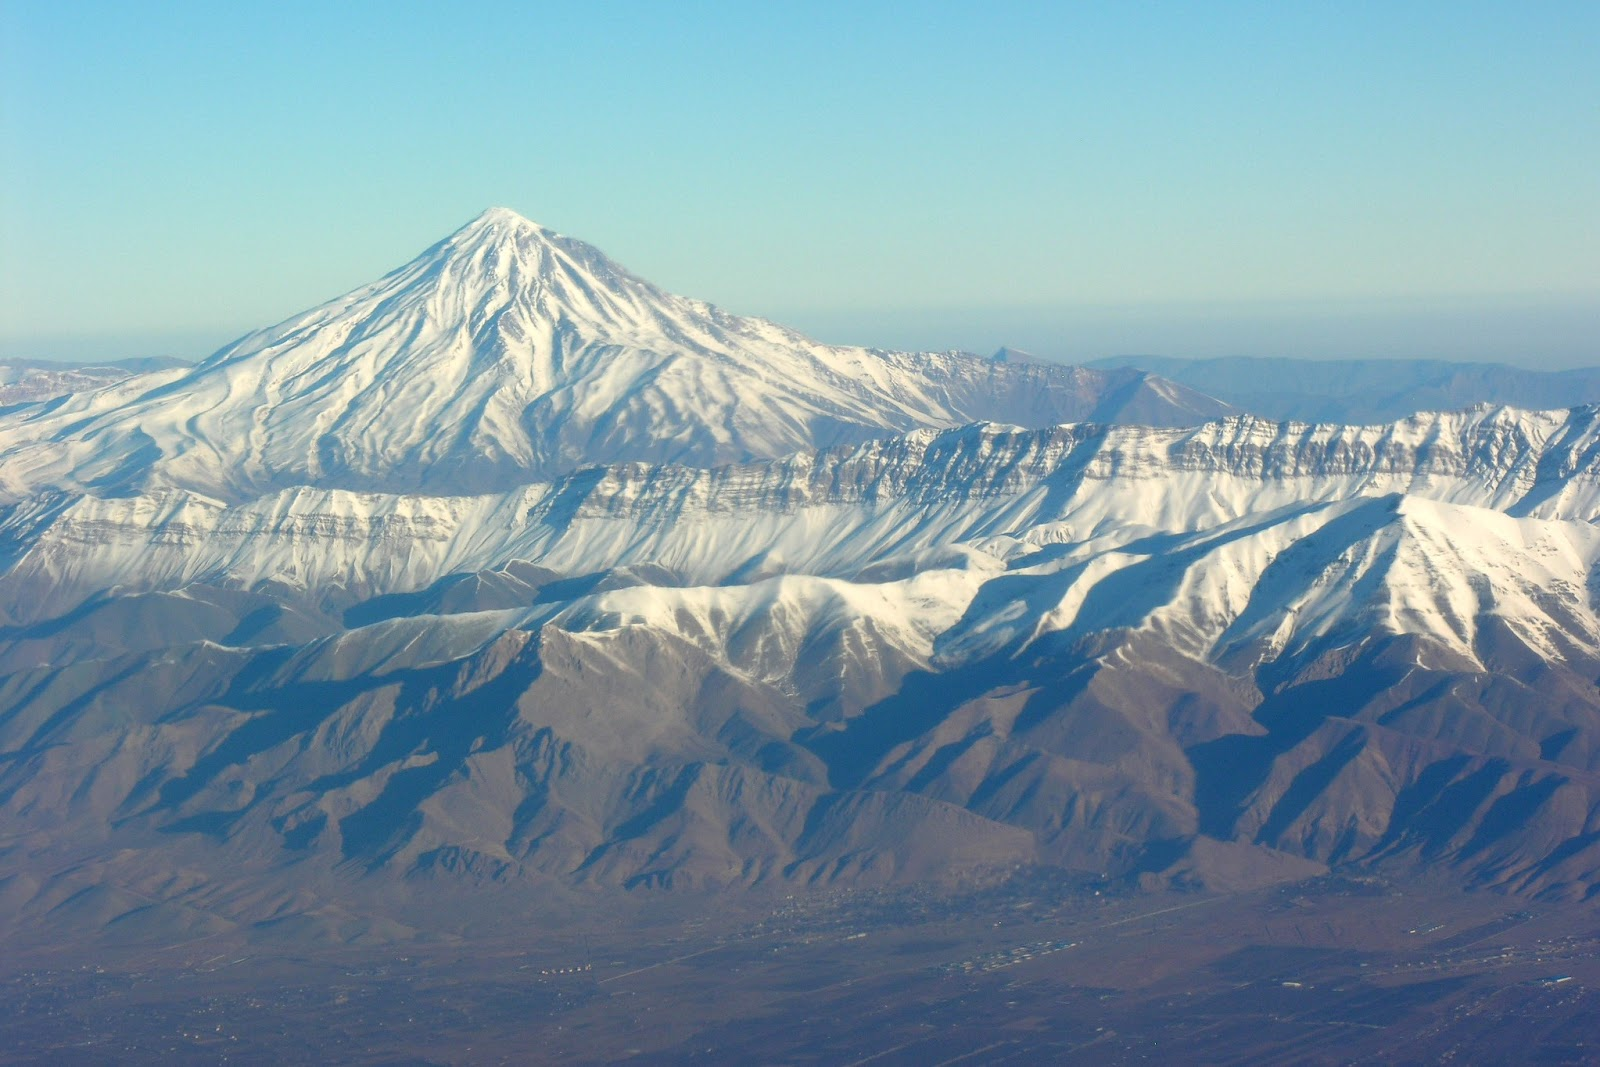 Aerial_View_of_Damavand_26.11.2008_04-23-59.JPG